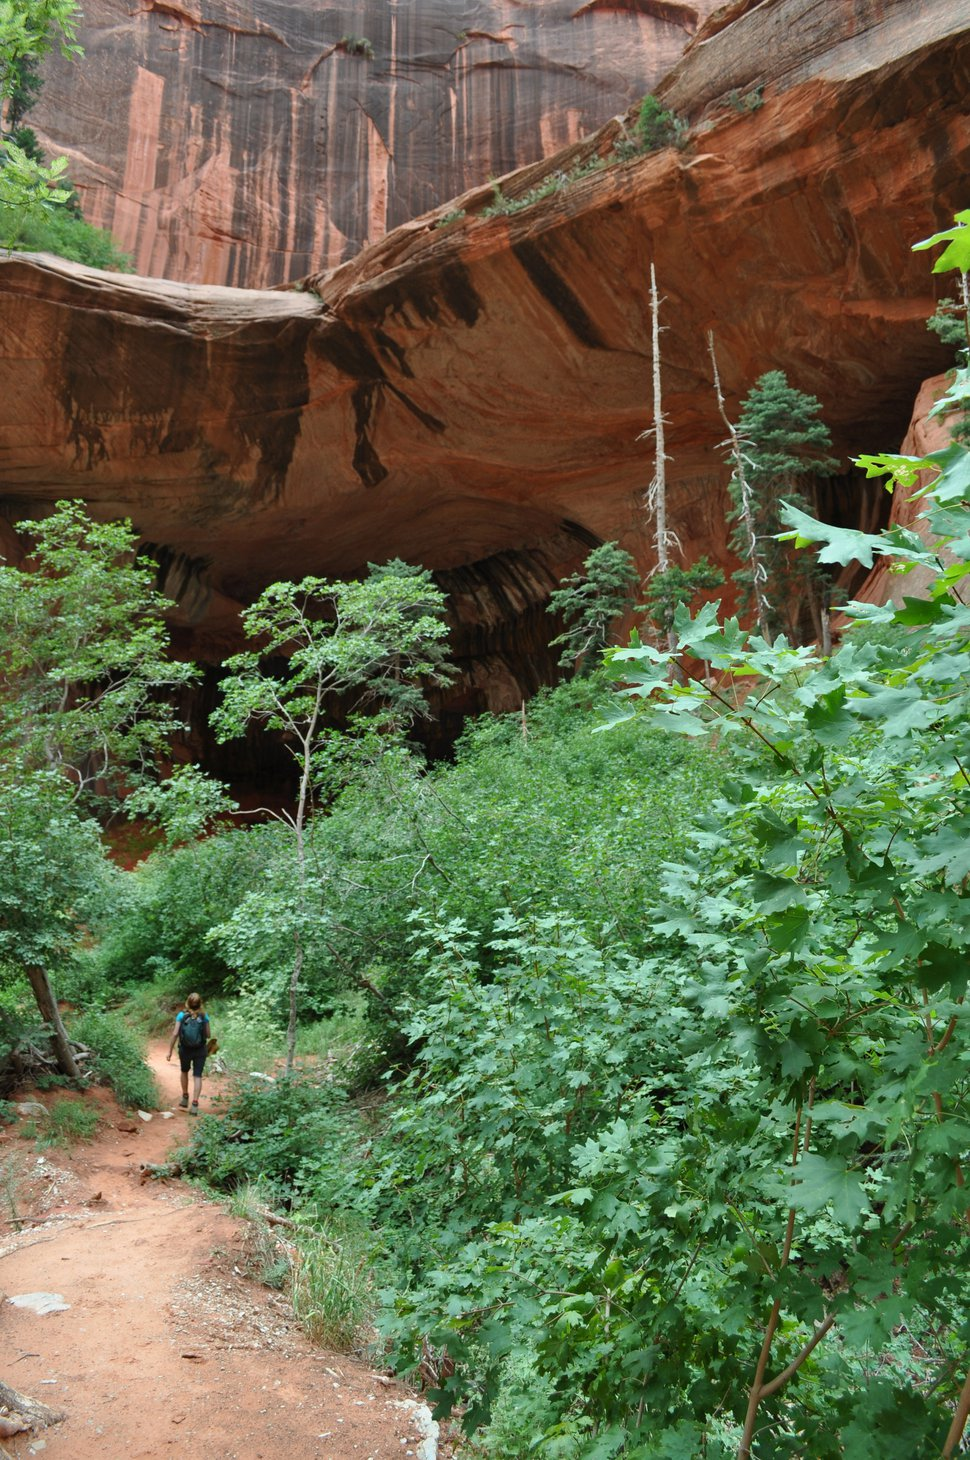 (Courtesy of Craig Buschmann) The hike along the Middle Fork of Taylor Creek leads to an alcove in the quiet Kolob Canyons section of Zion National Park in Utah. Photo taken August 2013.